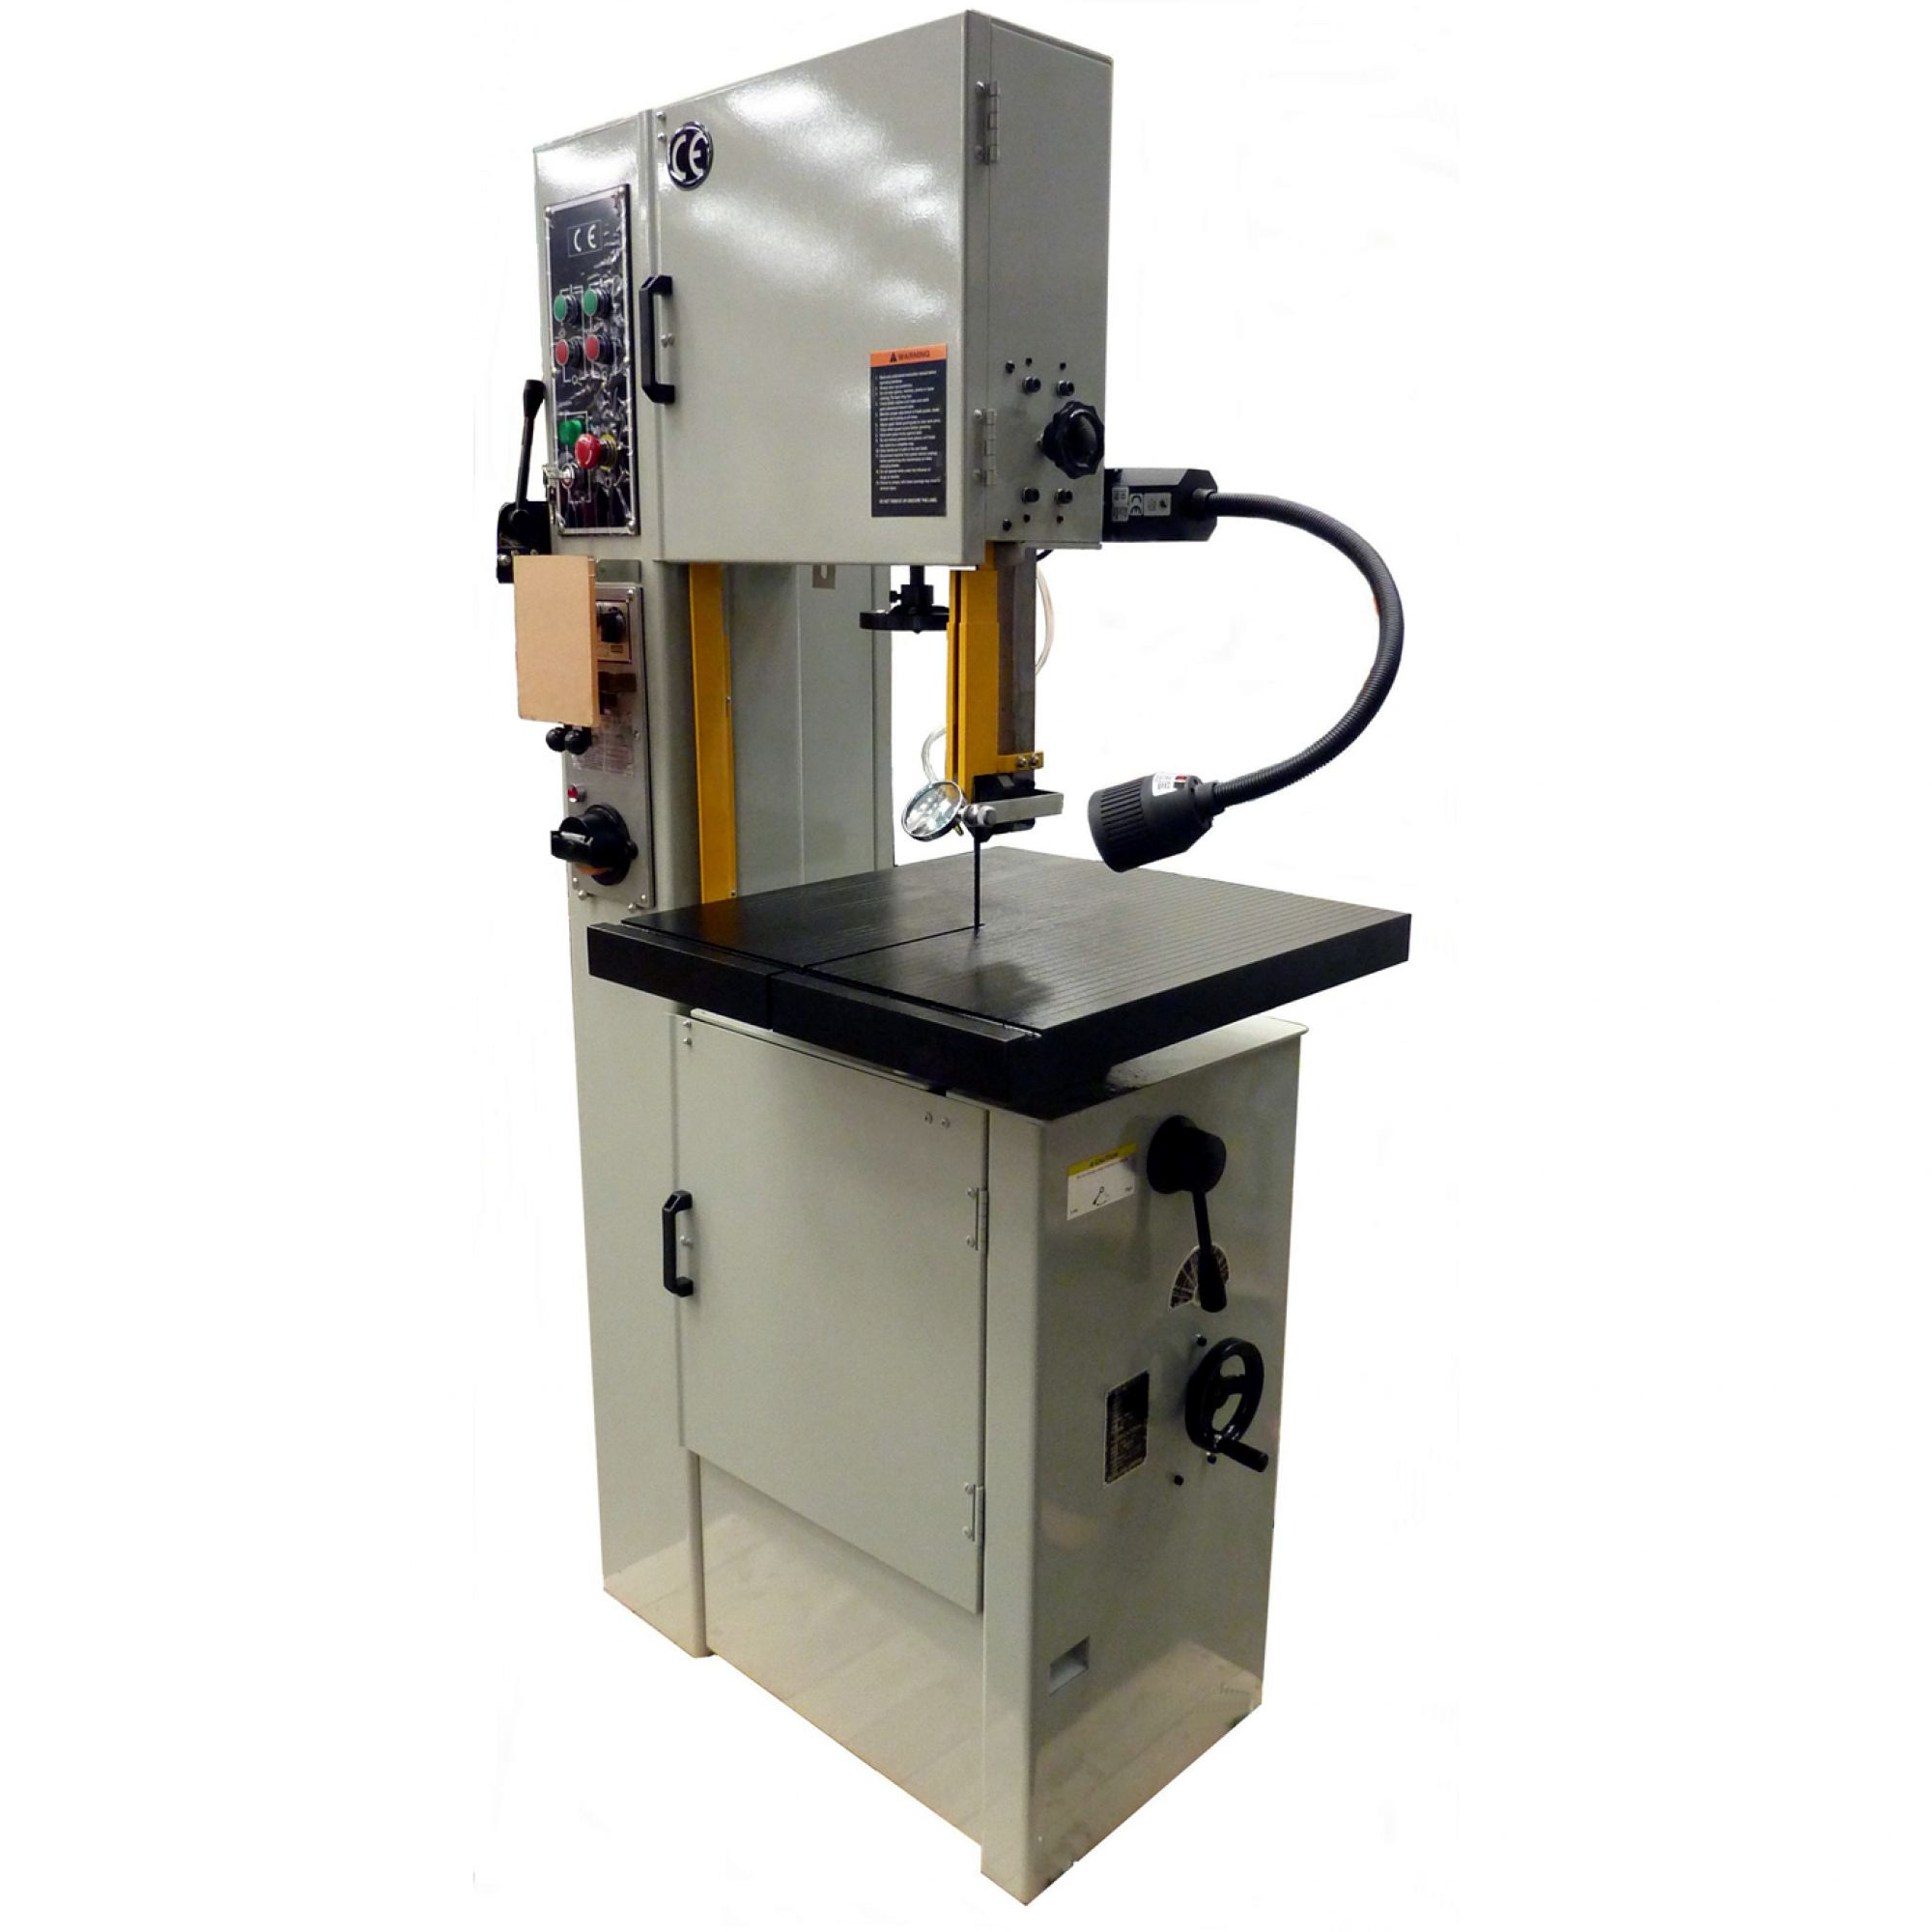 SD-1610 Vertical Bandsaw